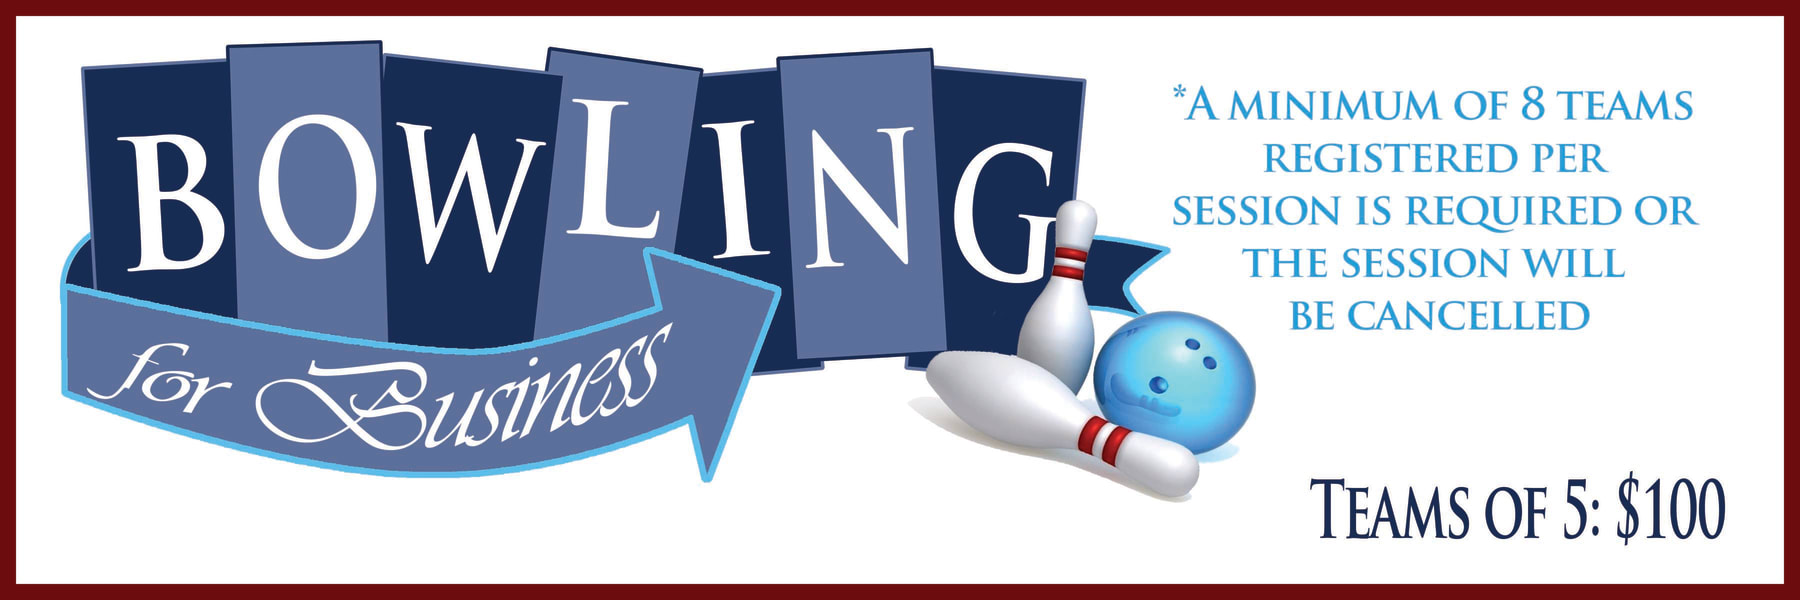 2018-Bowling-For-Business-Invite-Web-Banner-w1800.jpg